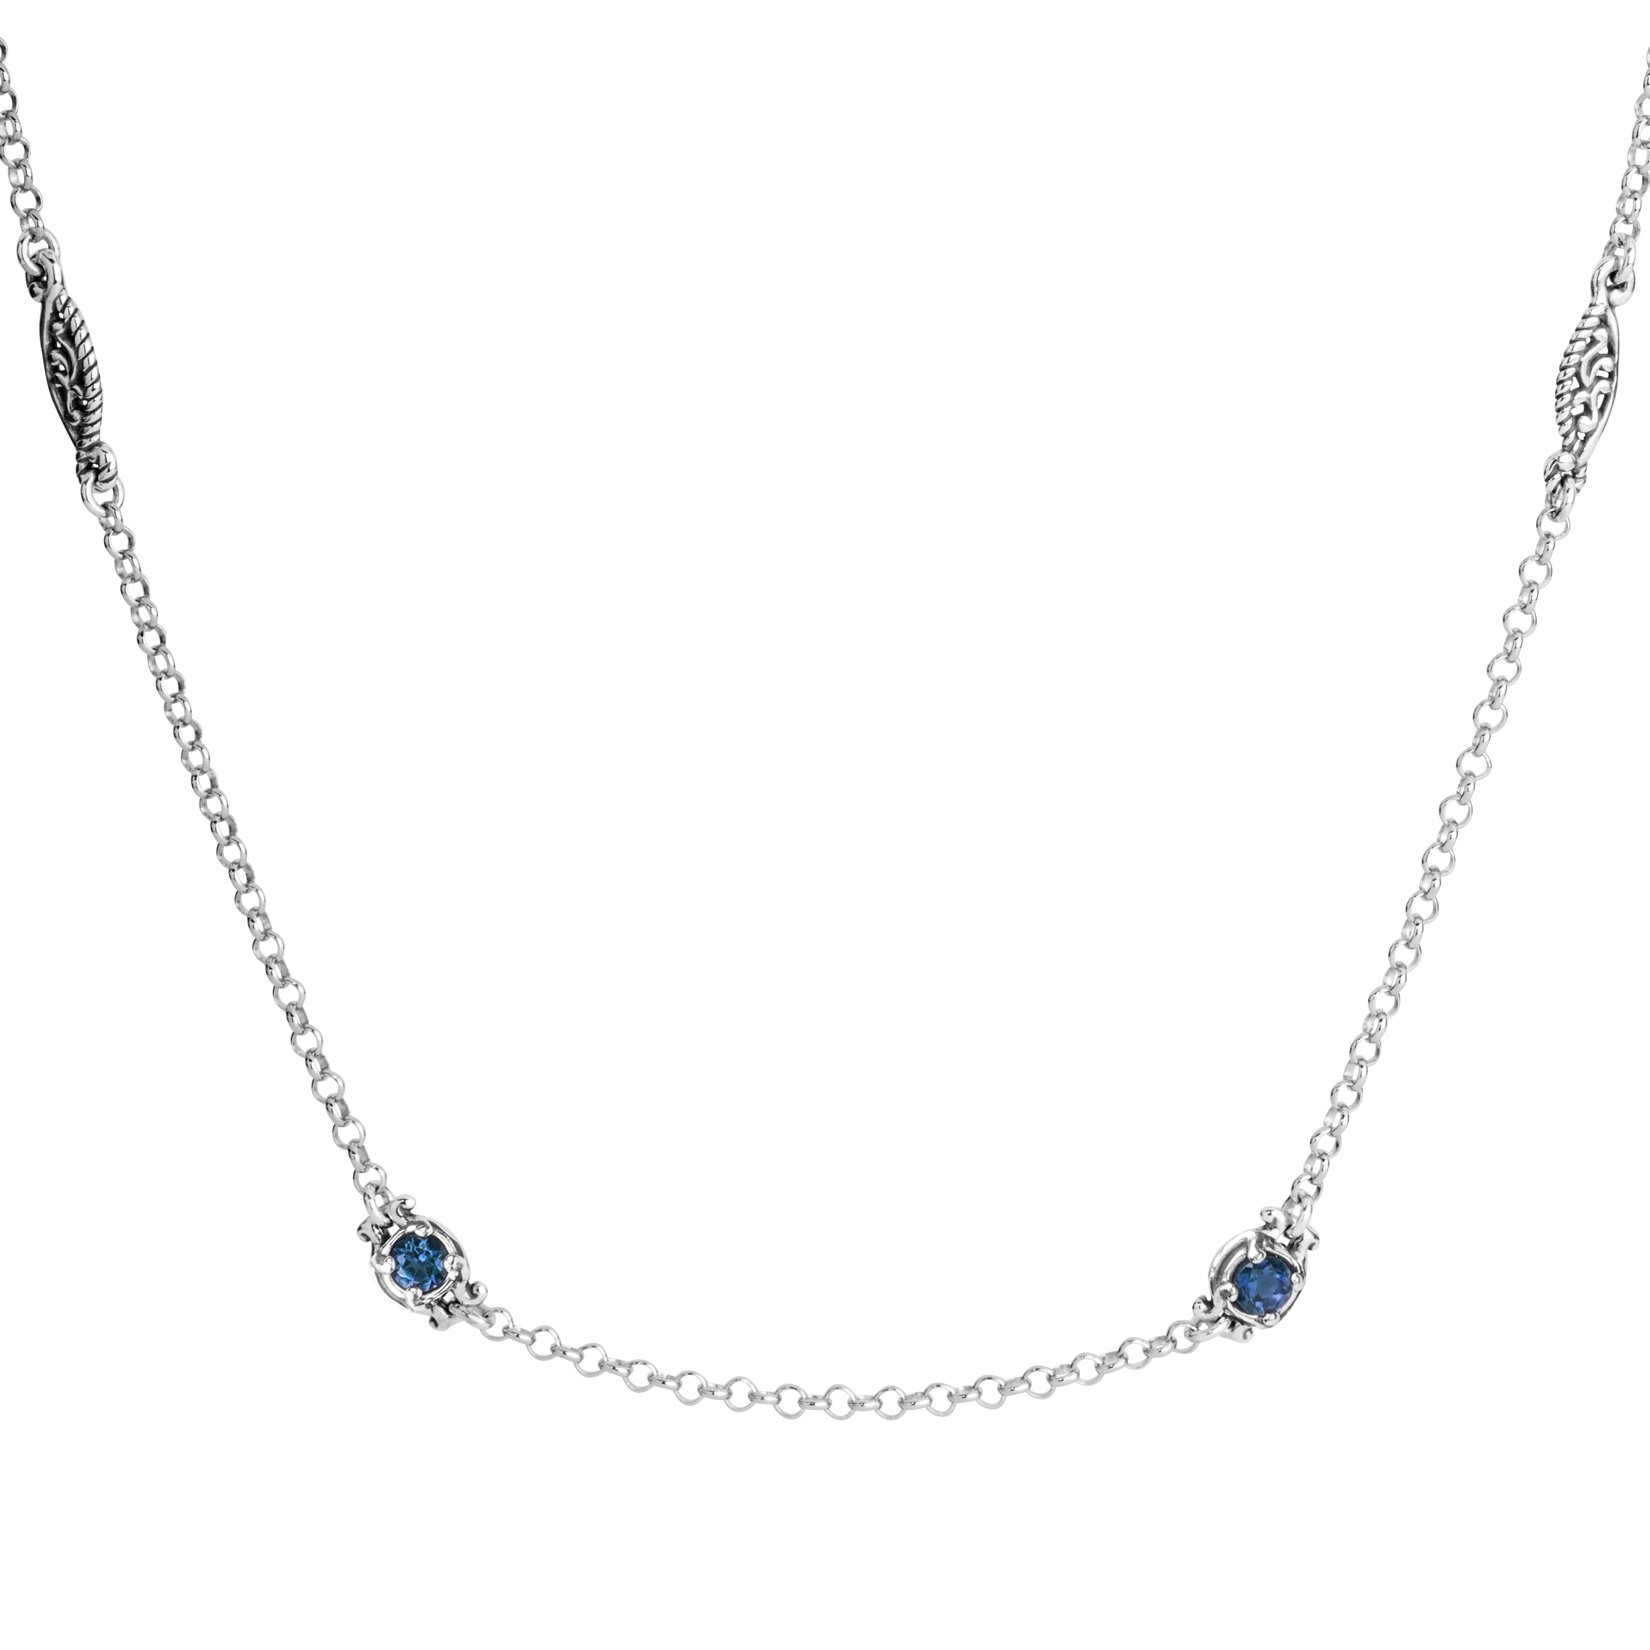 Simply Fabulous Sterling Silver & Faceted Blue Topaz 32 Inch Necklace